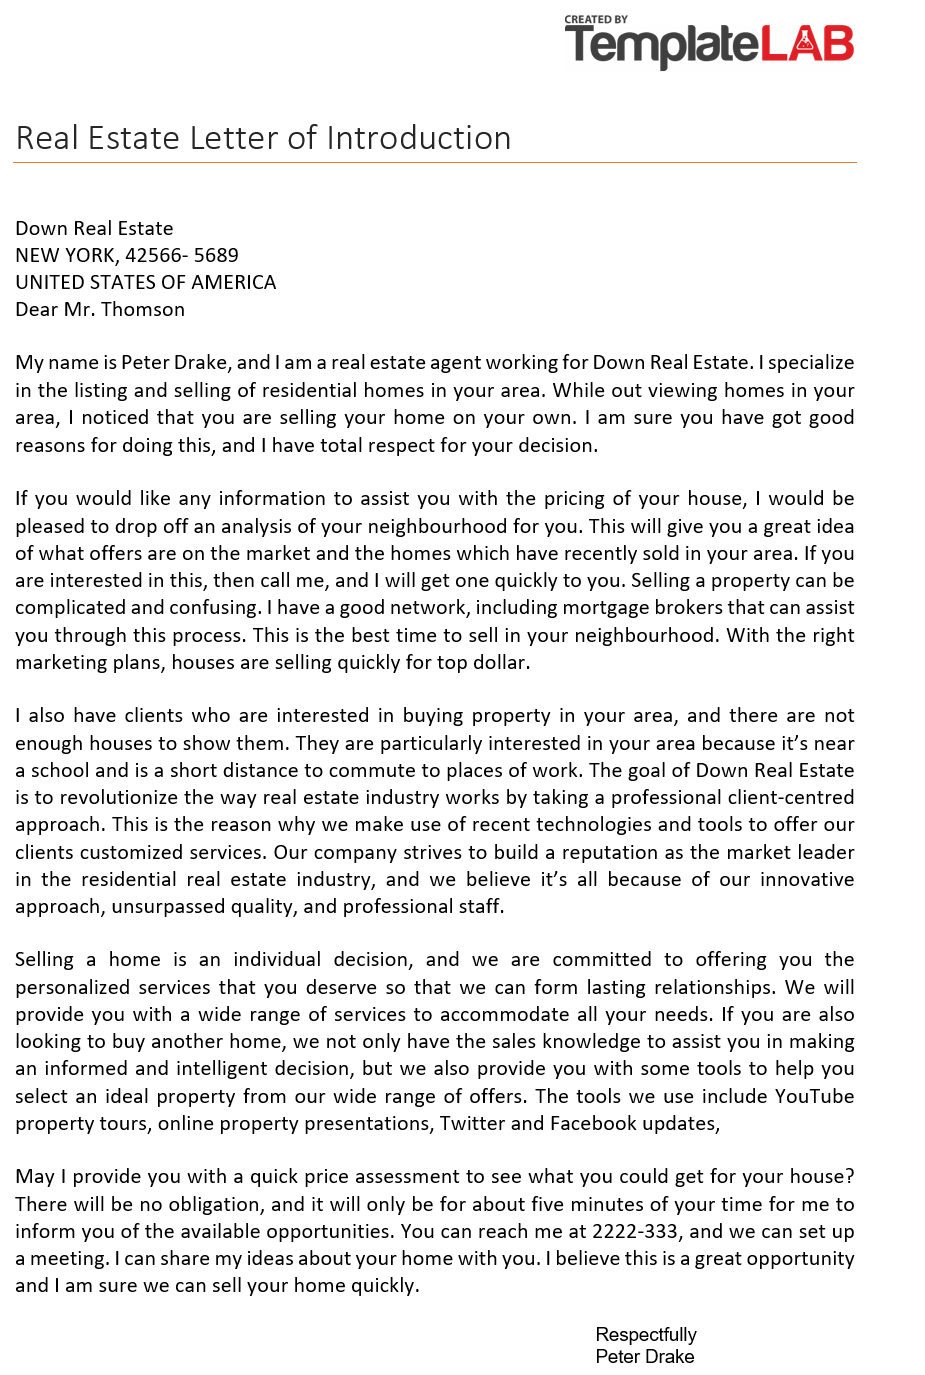 Free Real Estate Letter of Introduction 2